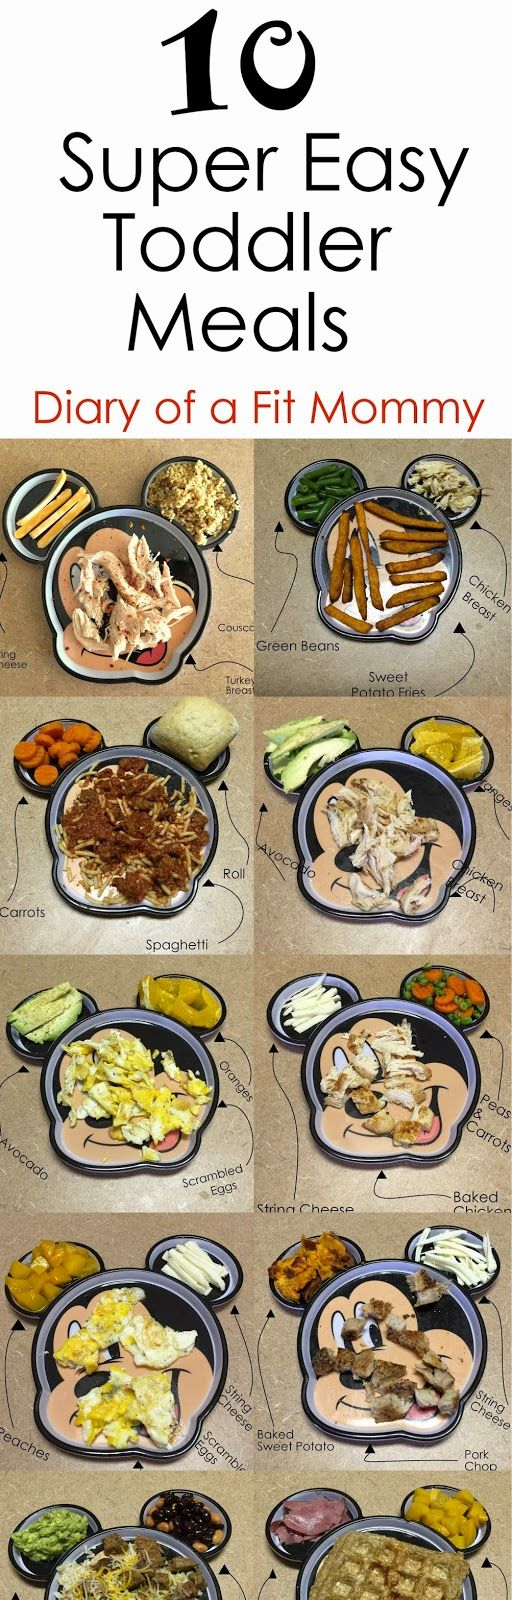 111 best baby food images on pinterest baby foods baby meals and one day they love a certain food and then the next day they hate it we started baby led weaning my so forumfinder Image collections